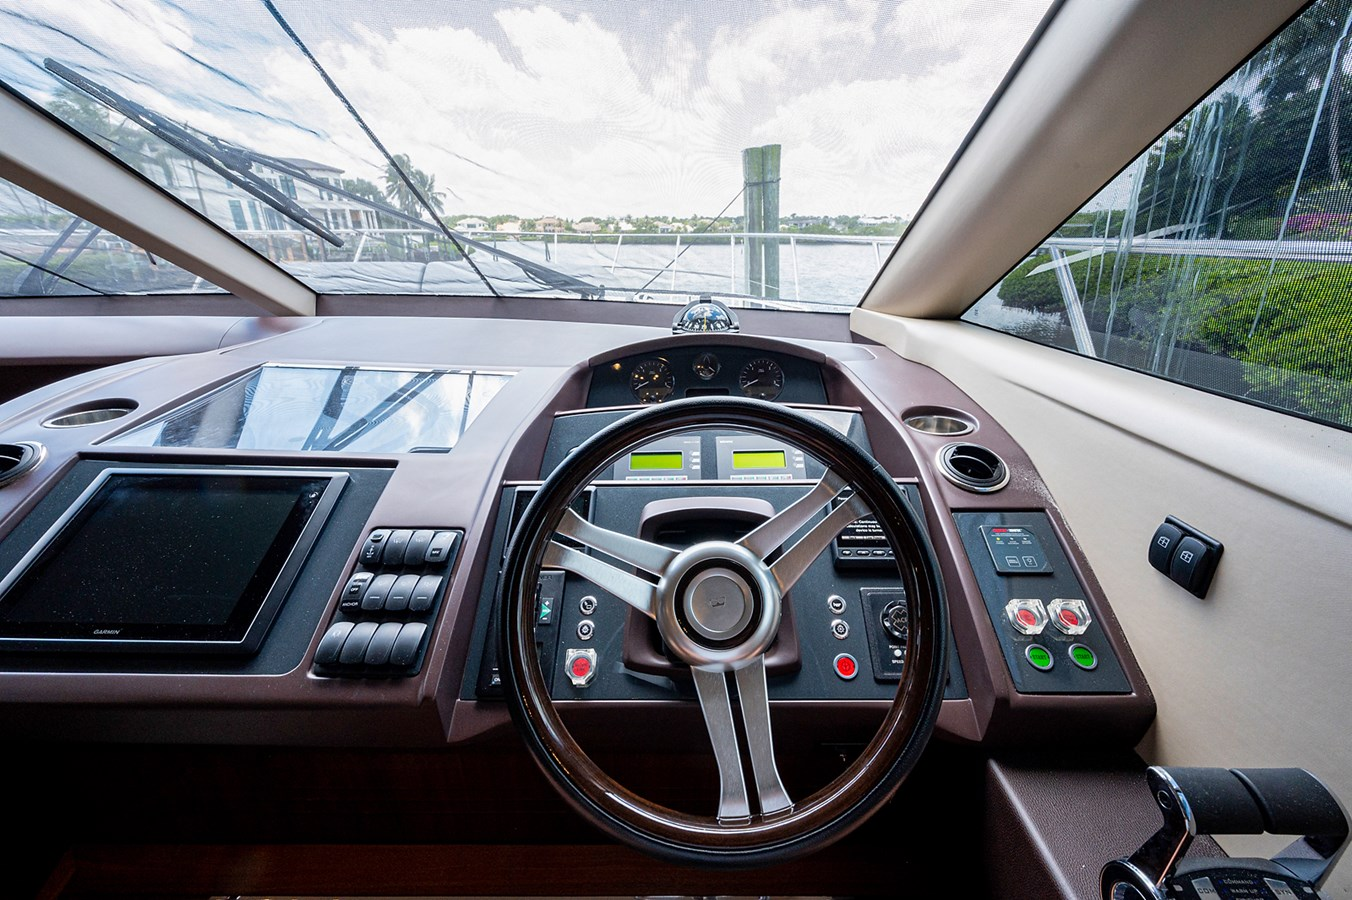 Bow To Stern_Helm4 2015 PRINCESS YACHTS 56 Motor Yacht 2932831